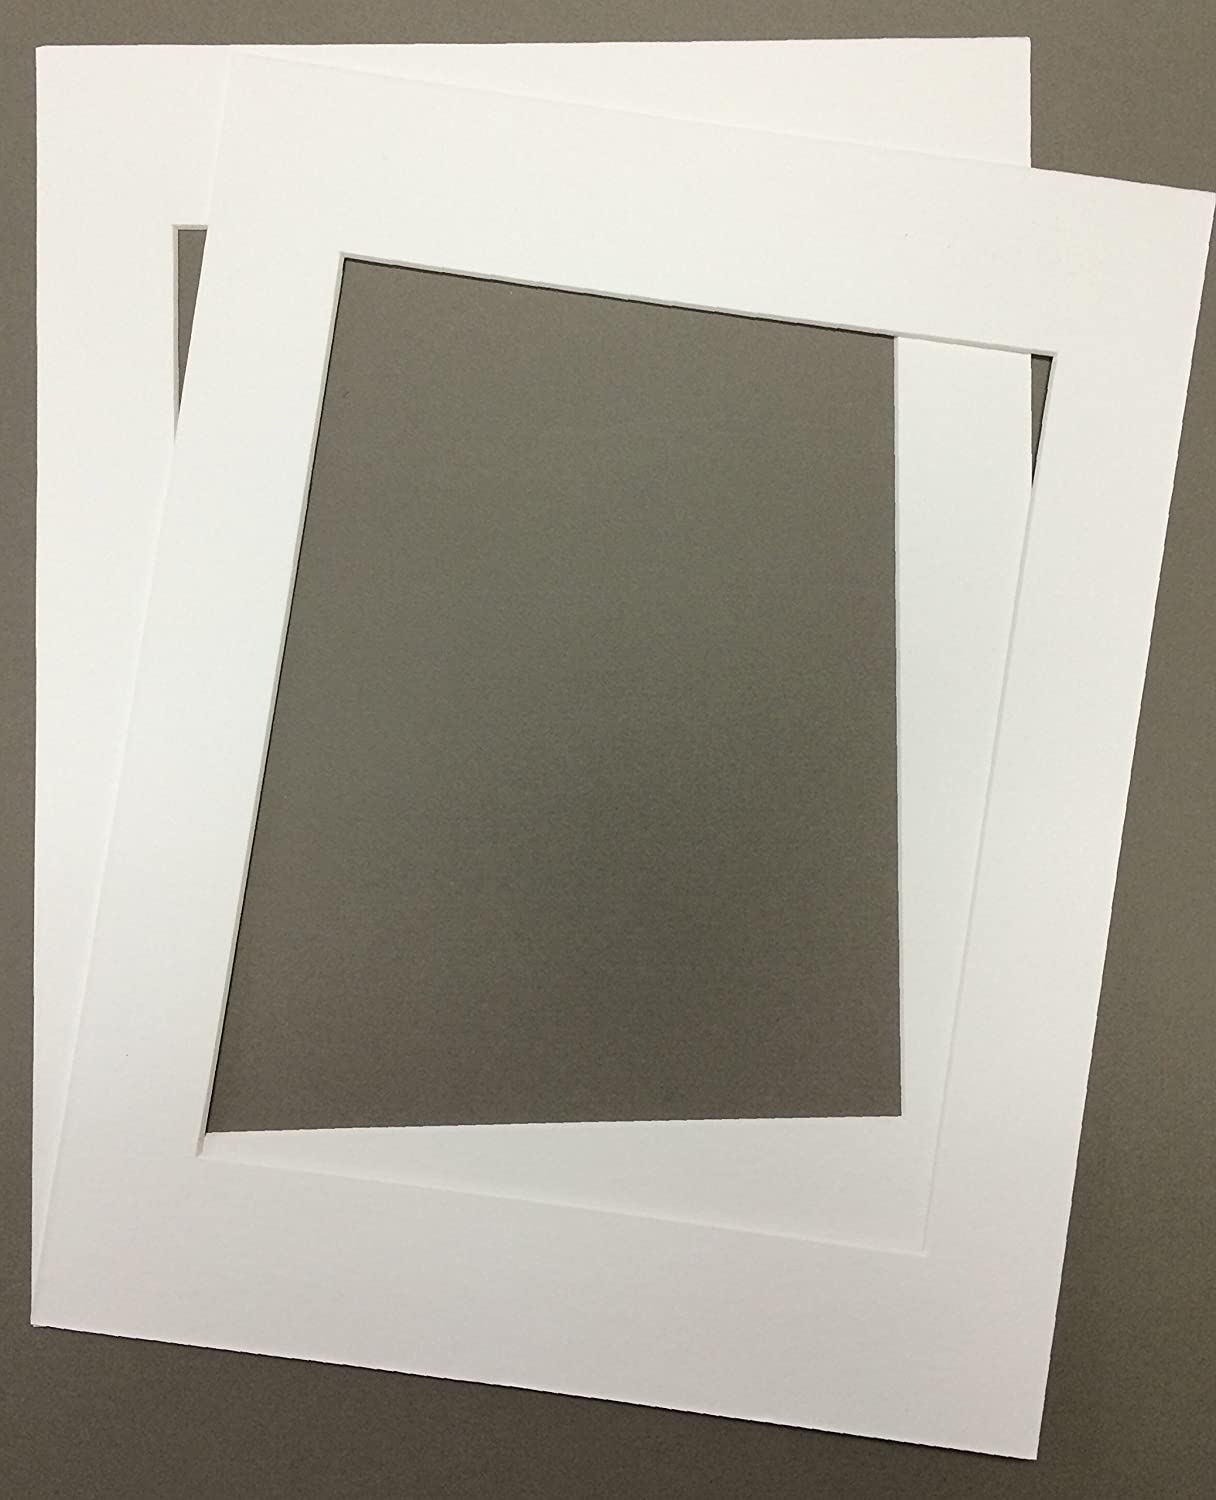 Pack of 2 24x36 White Picture Mats with White Core, for 20x30 Pictures Bux1 Picture Matting 4336896107